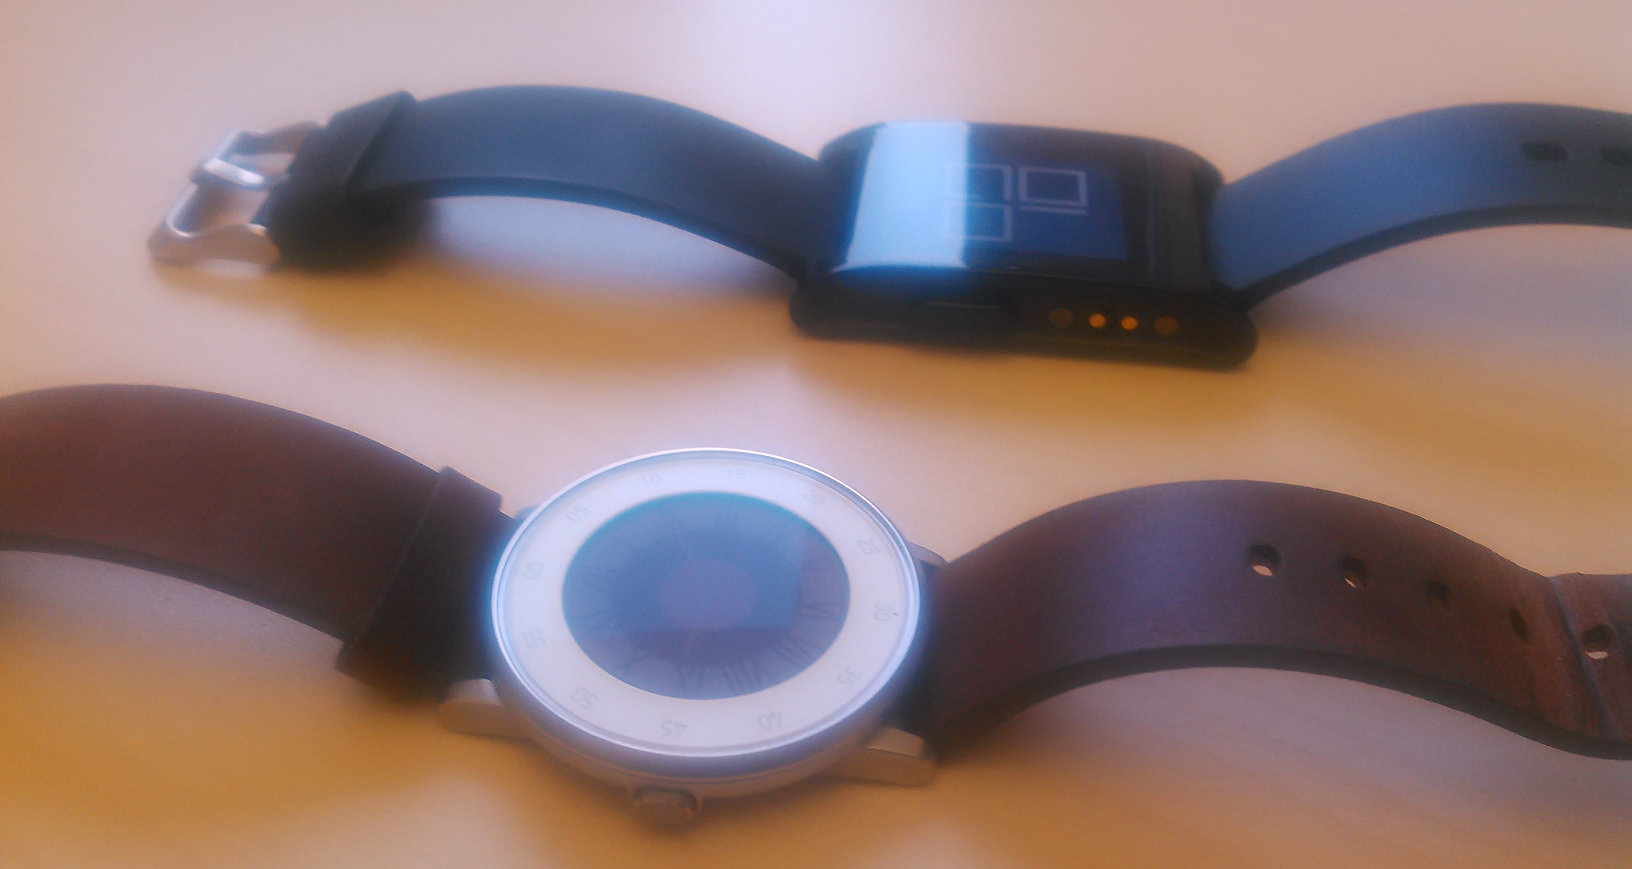 Pebble Classic (above) and Pebble Time Round (below)